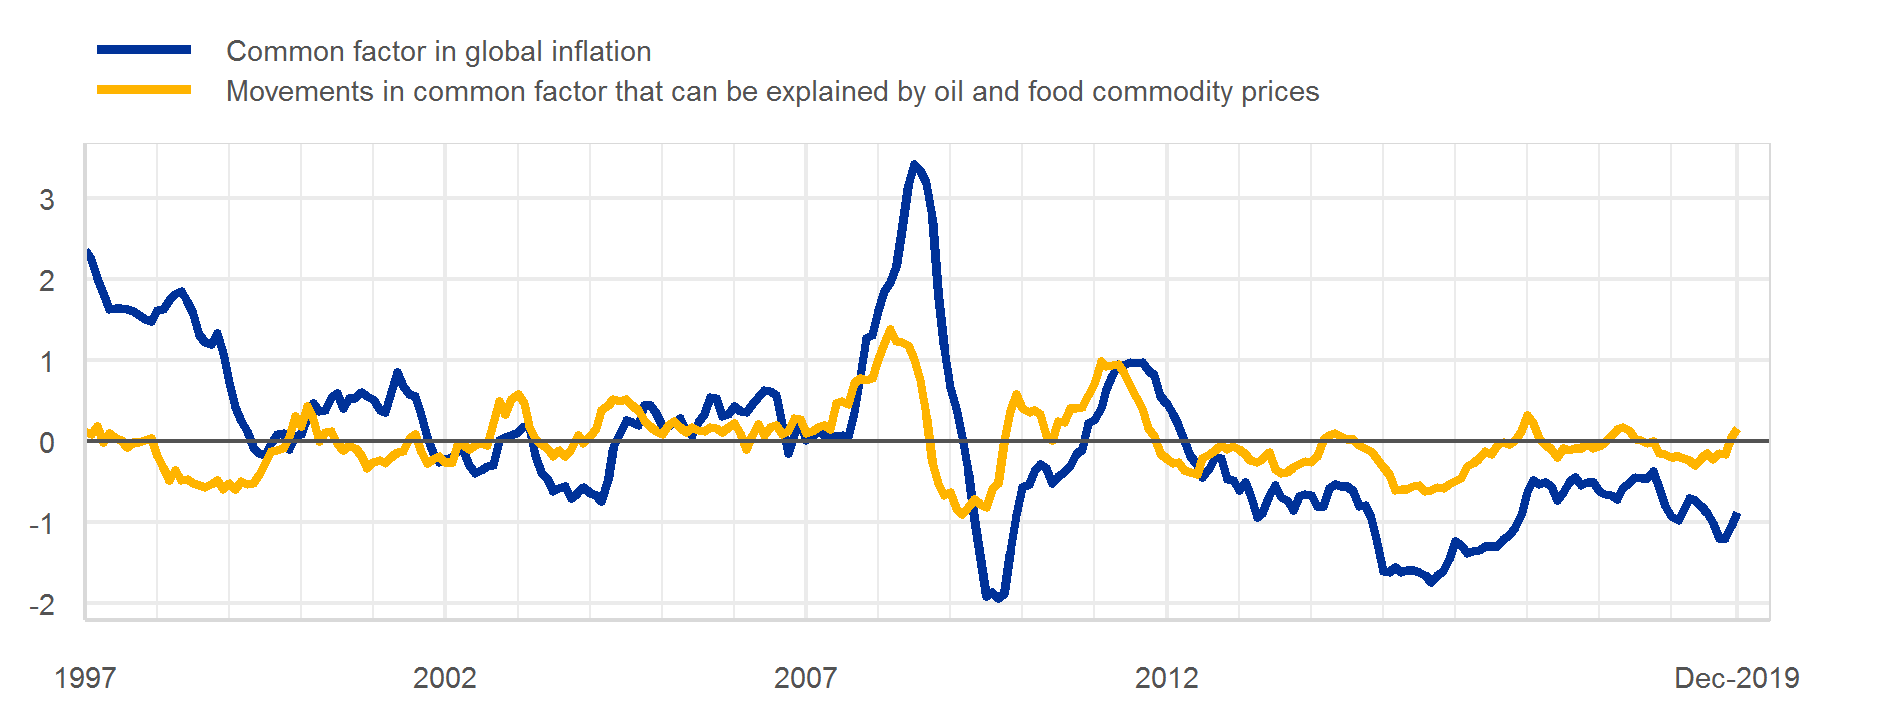 C:\Users\osbatch\Downloads\00.tmp speech pics\Common factor in global inflation.png